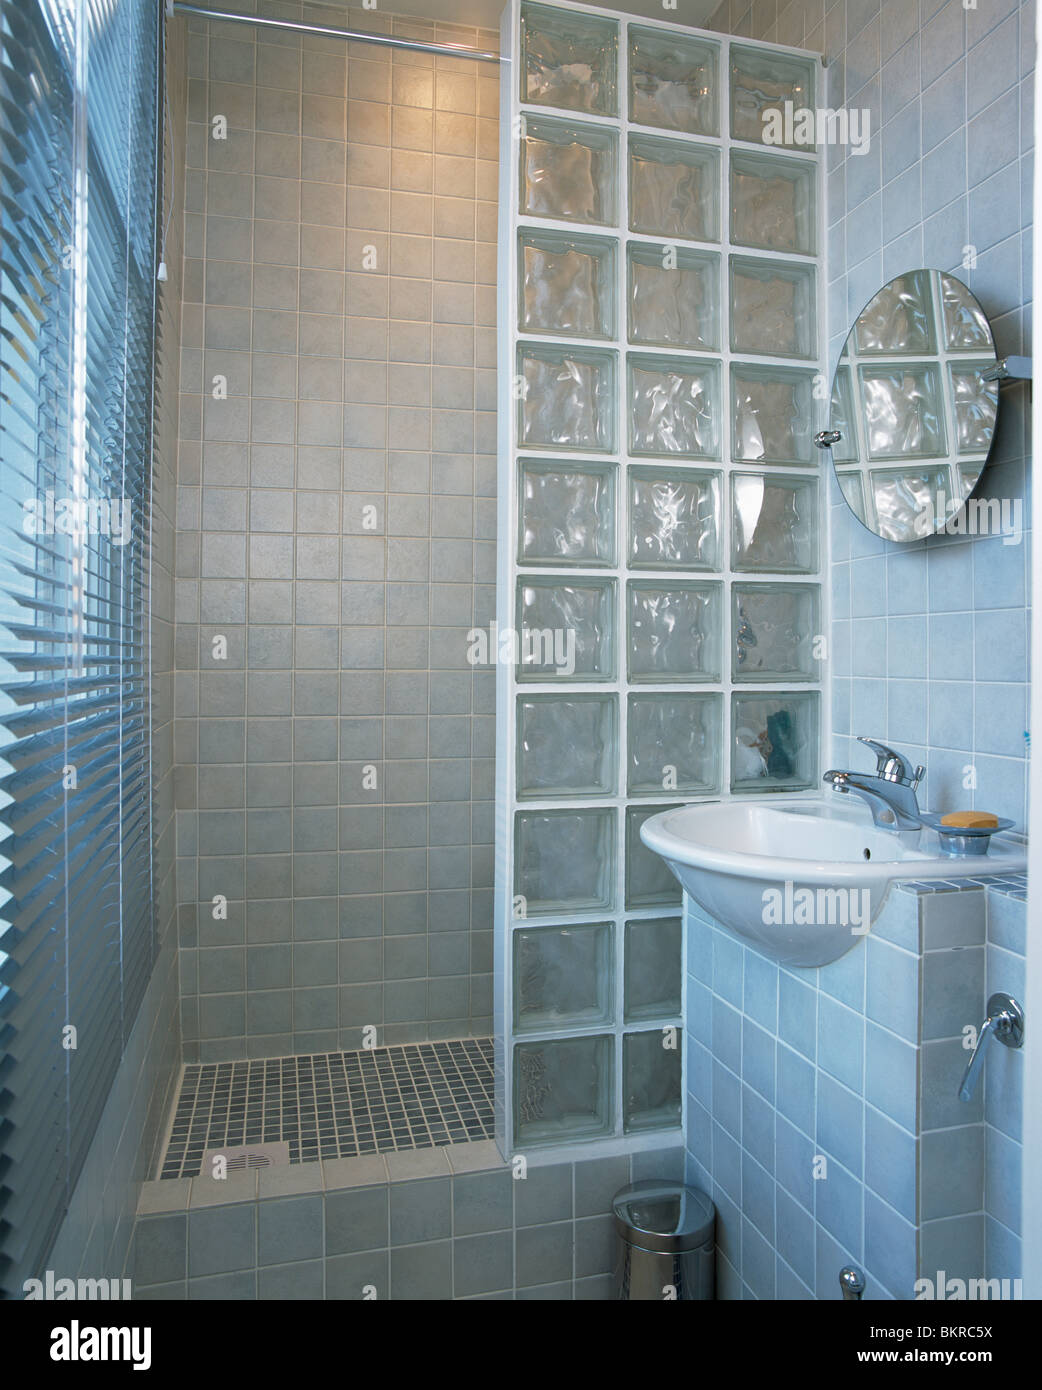 Shower Bathroom Monochromatic Glass Stock Photos & Shower Bathroom ...